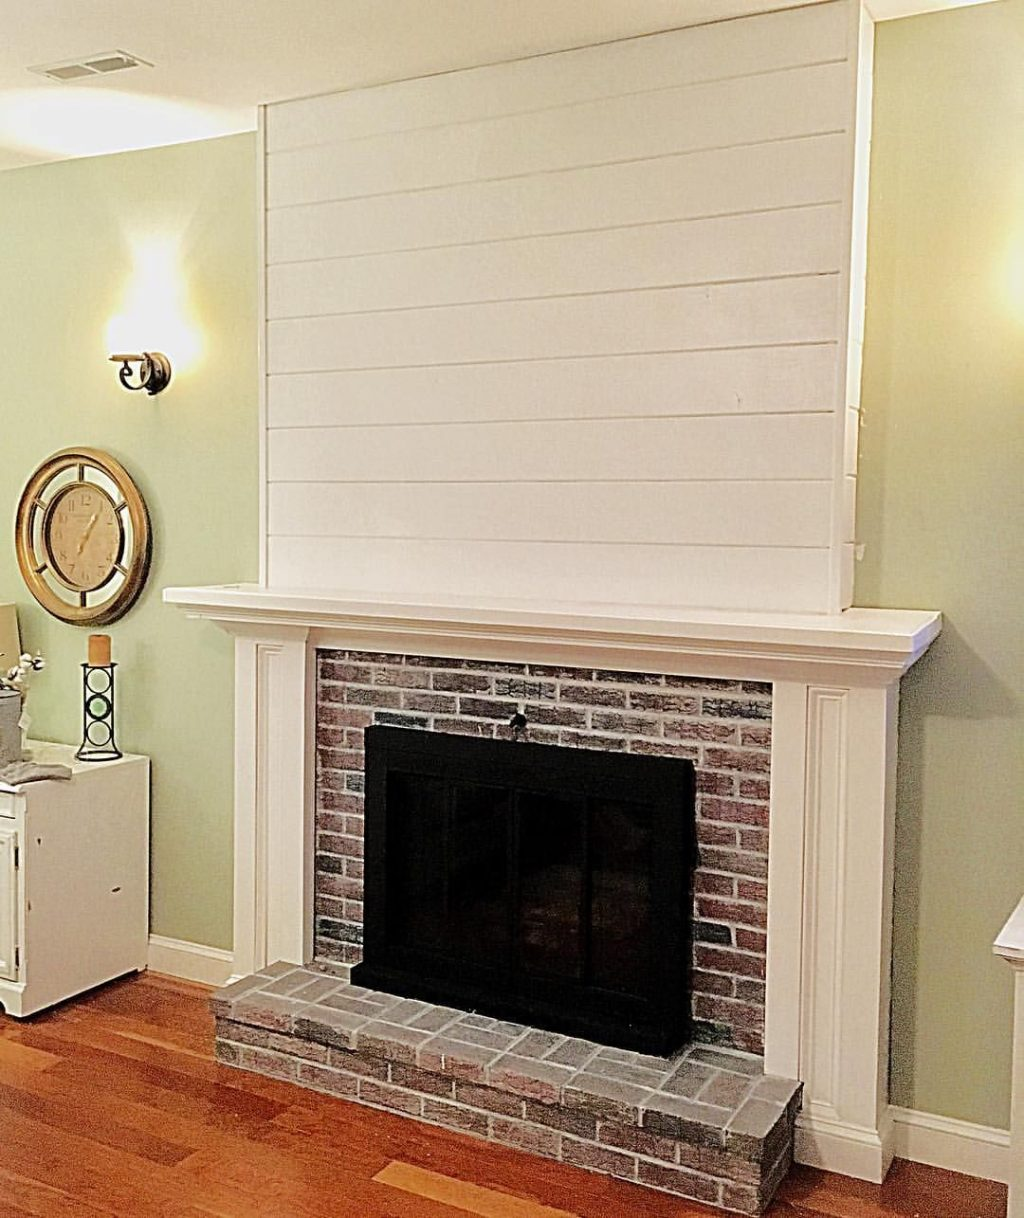 Pin Rebecca Sheerin On New House Ideas In 2019 Brick Fireplace